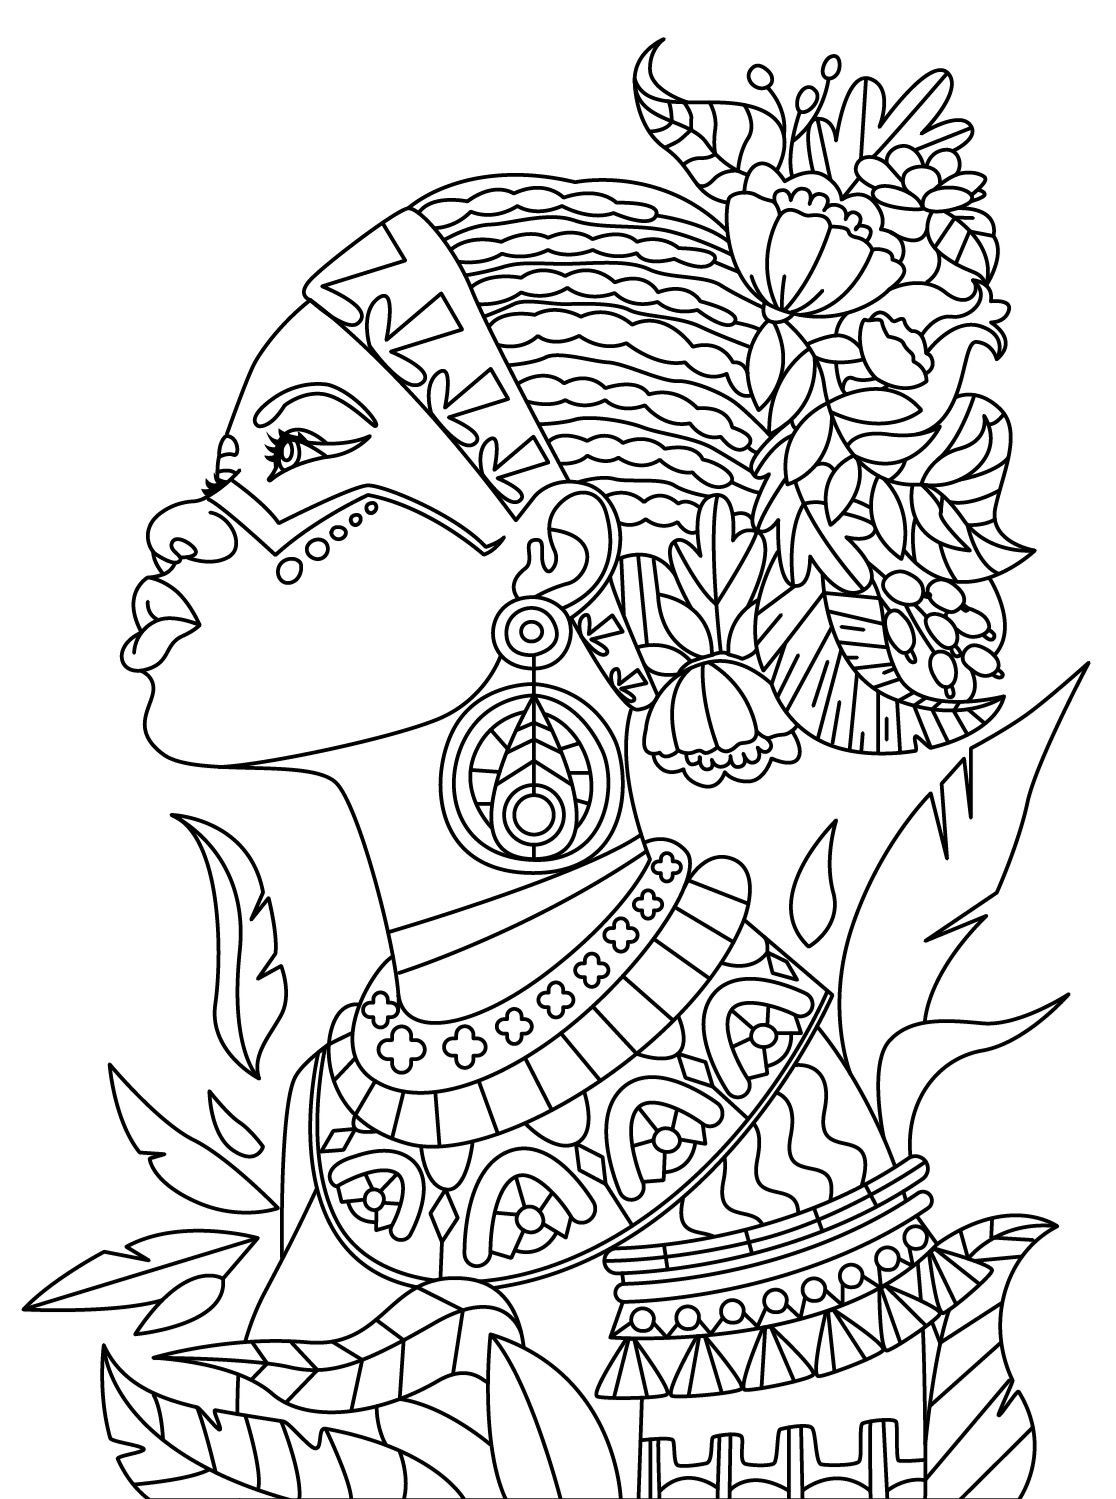 African Colorish Coloring Book App For Adults Mandala Relax By Goodsofttech Coloring Book App Ma In 2021 Coloring Book App Mandala Coloring Pages Animal Coloring Pages